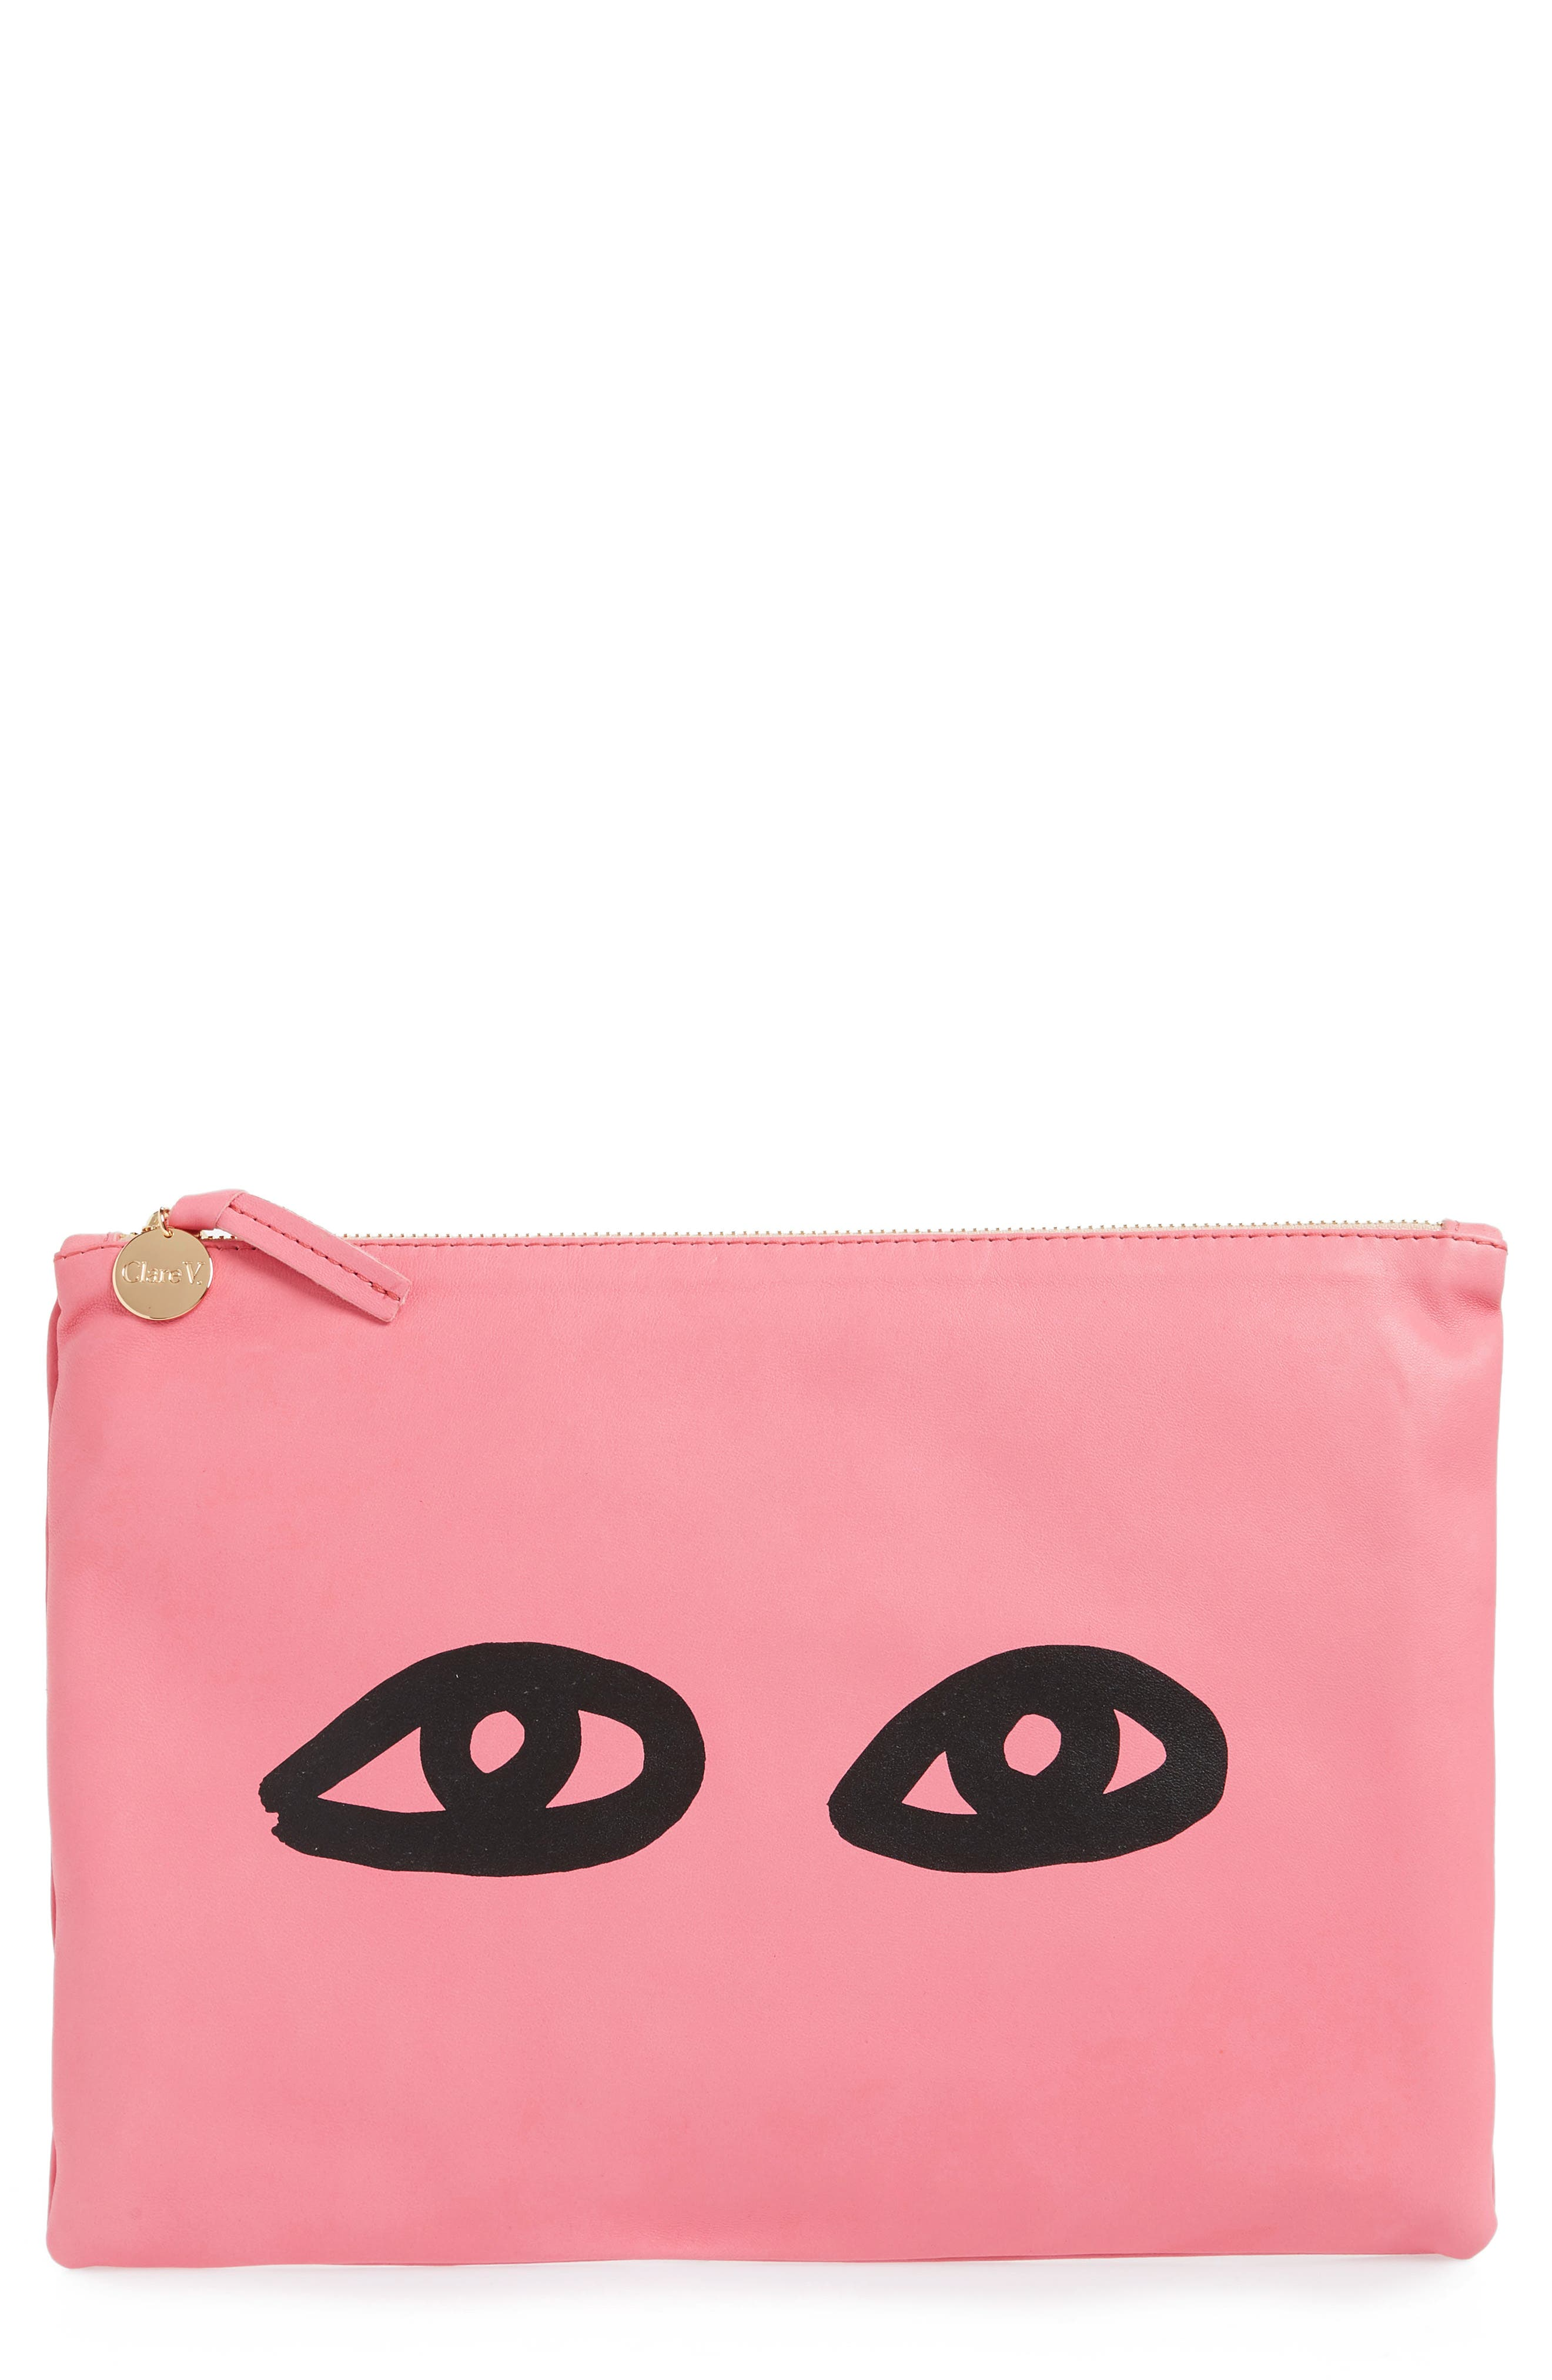 Eyes Leather Clutch,                             Main thumbnail 1, color,                             650